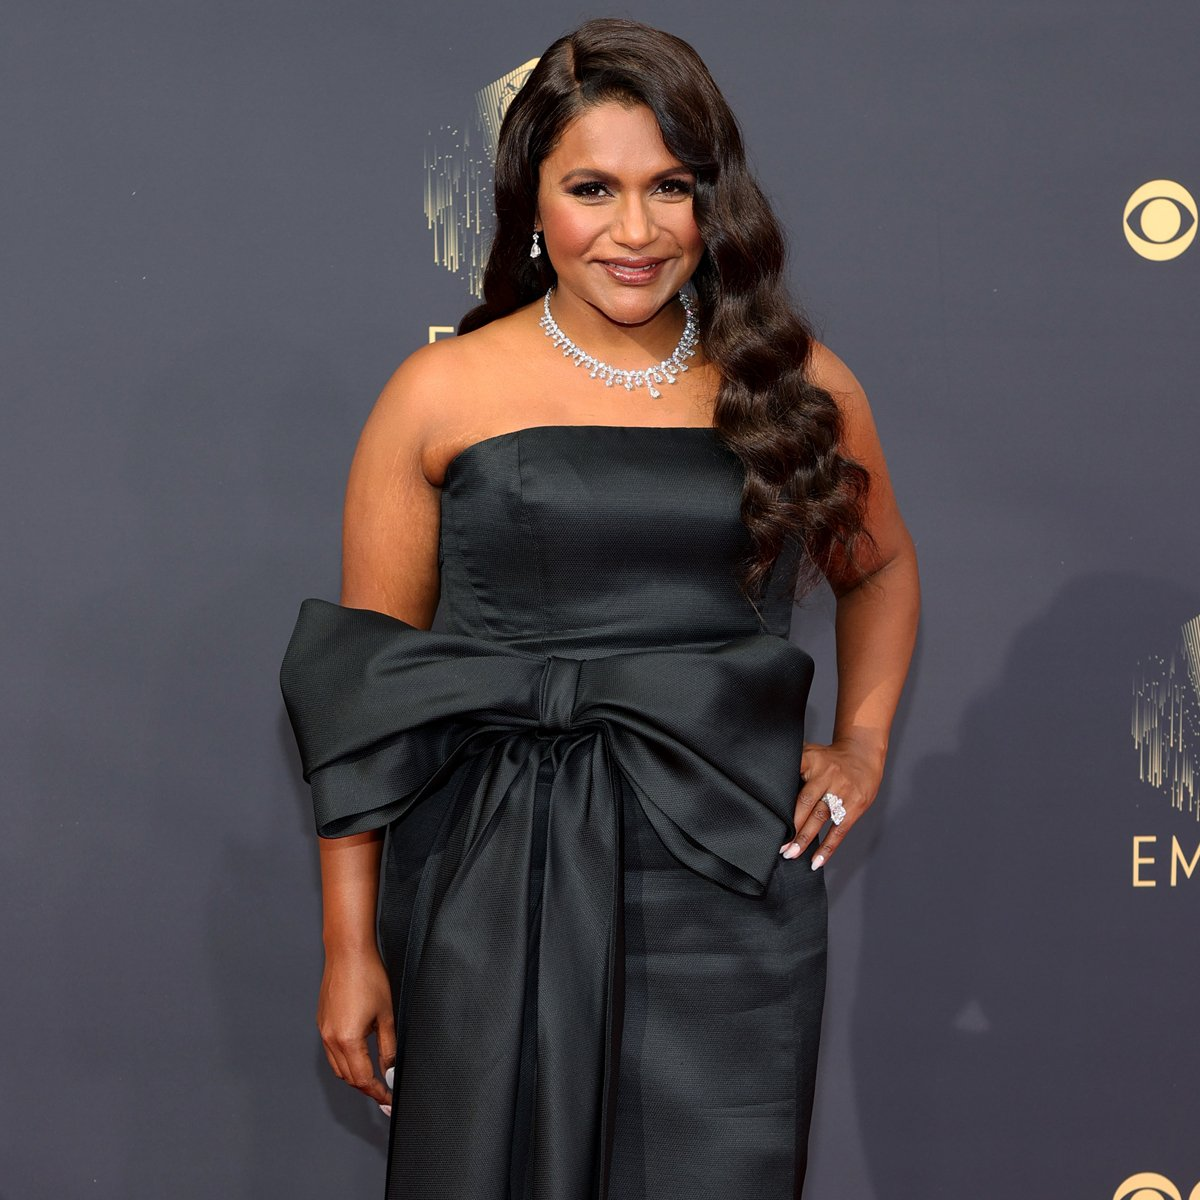 Mindy Kaling Puts a Bow on Her Incredible Year With Fanciful Look at The 2021 Emmys